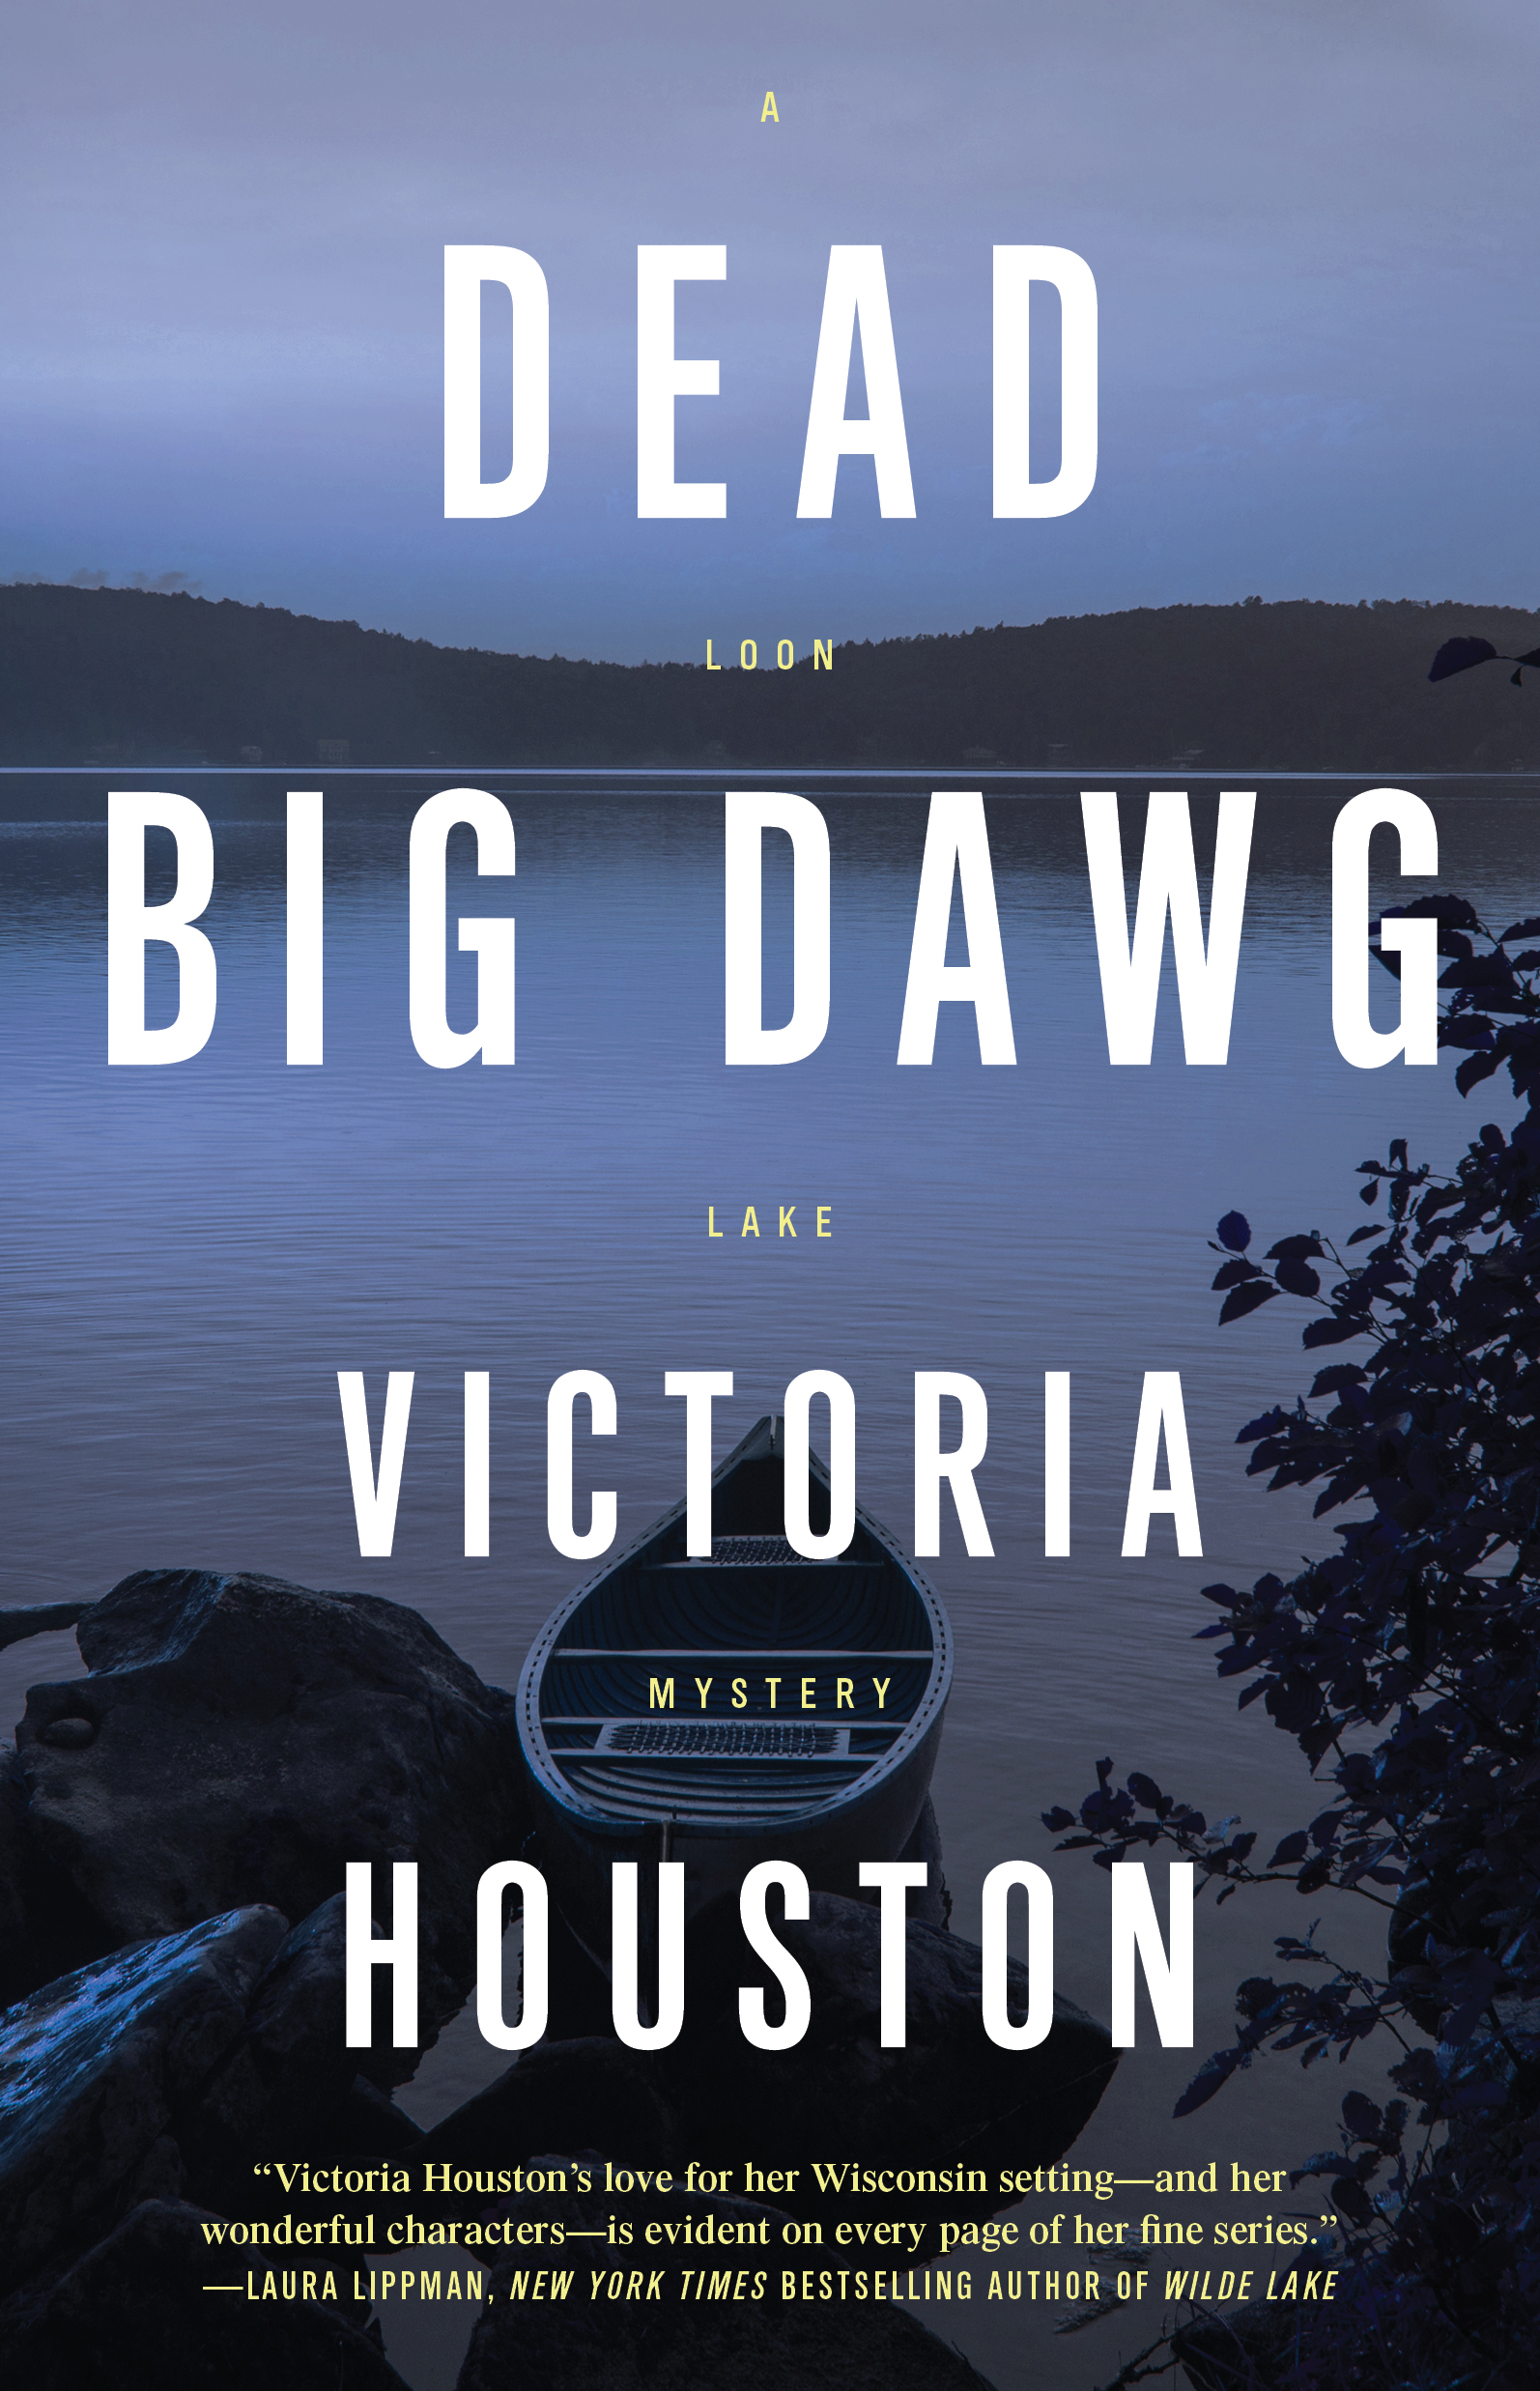 Dead Big Dawg | Book by Victoria Houston | Official